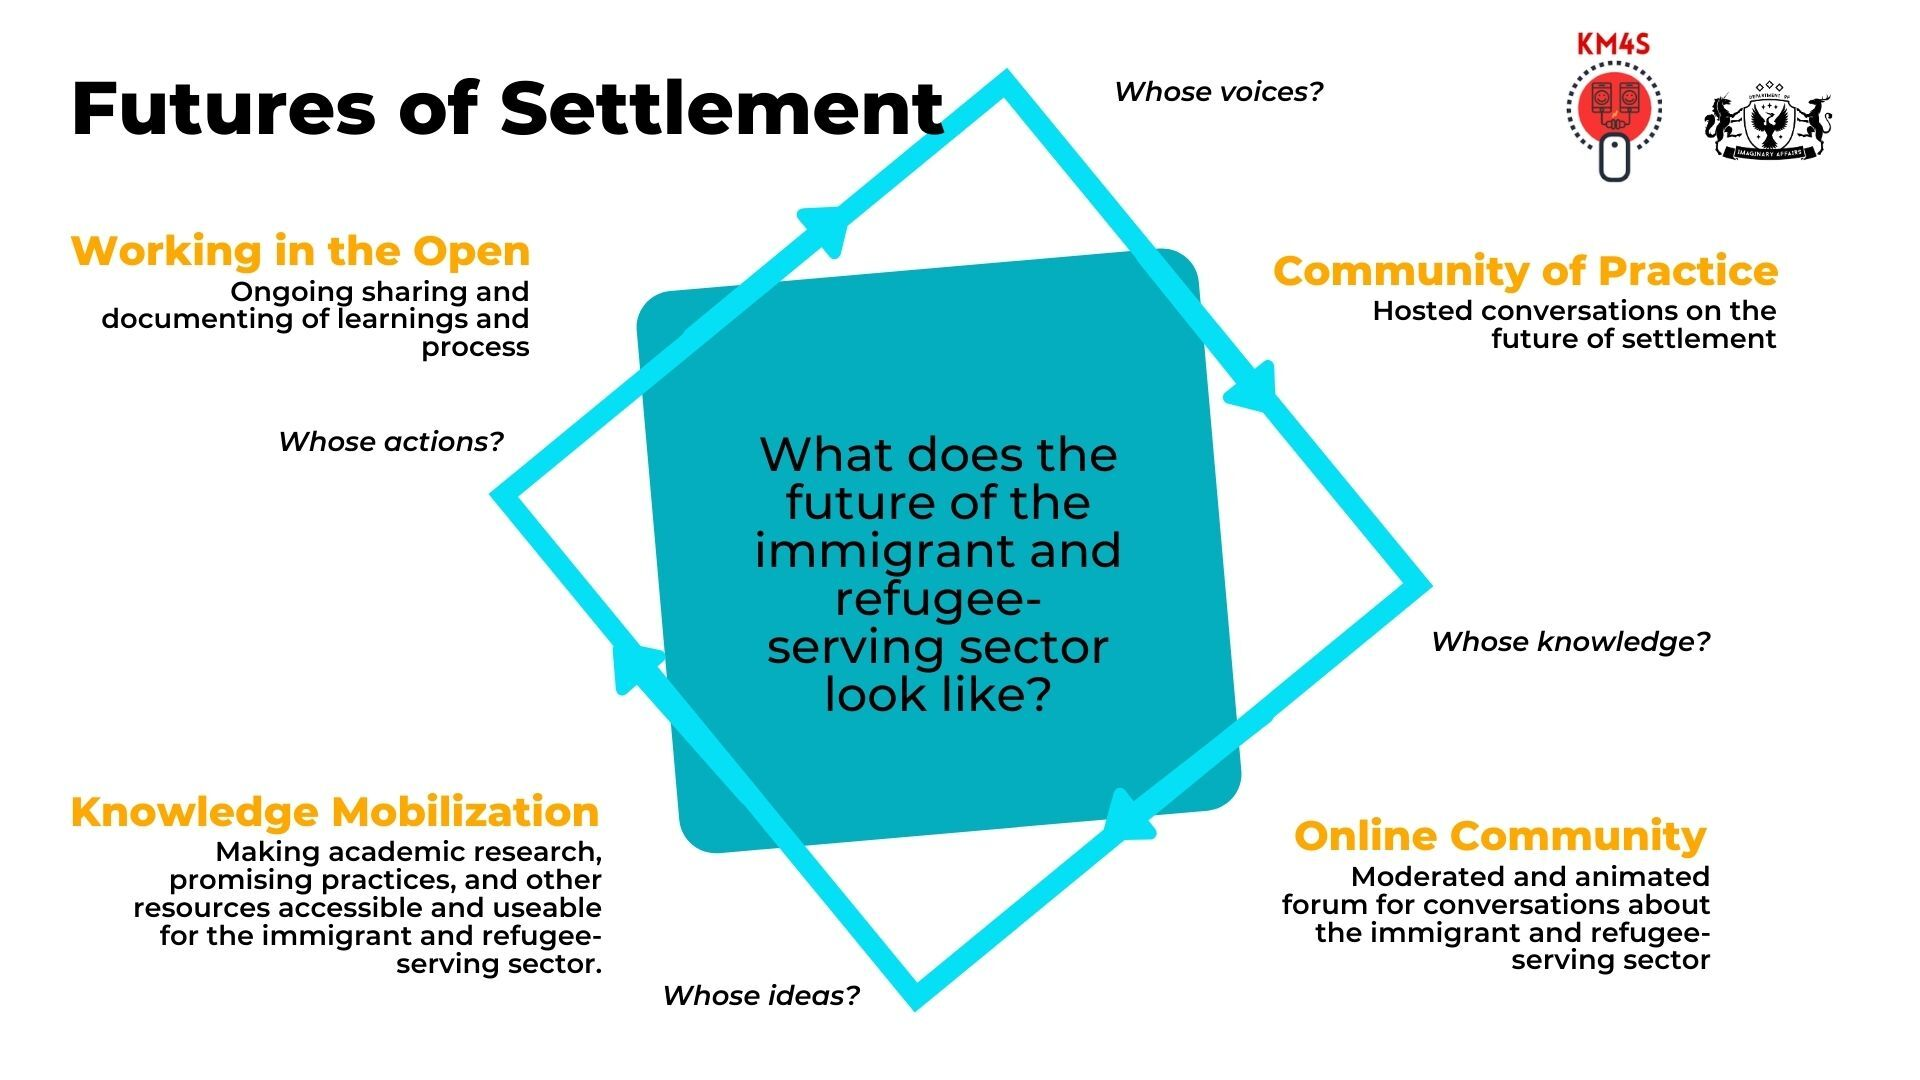 Futures of Settlement